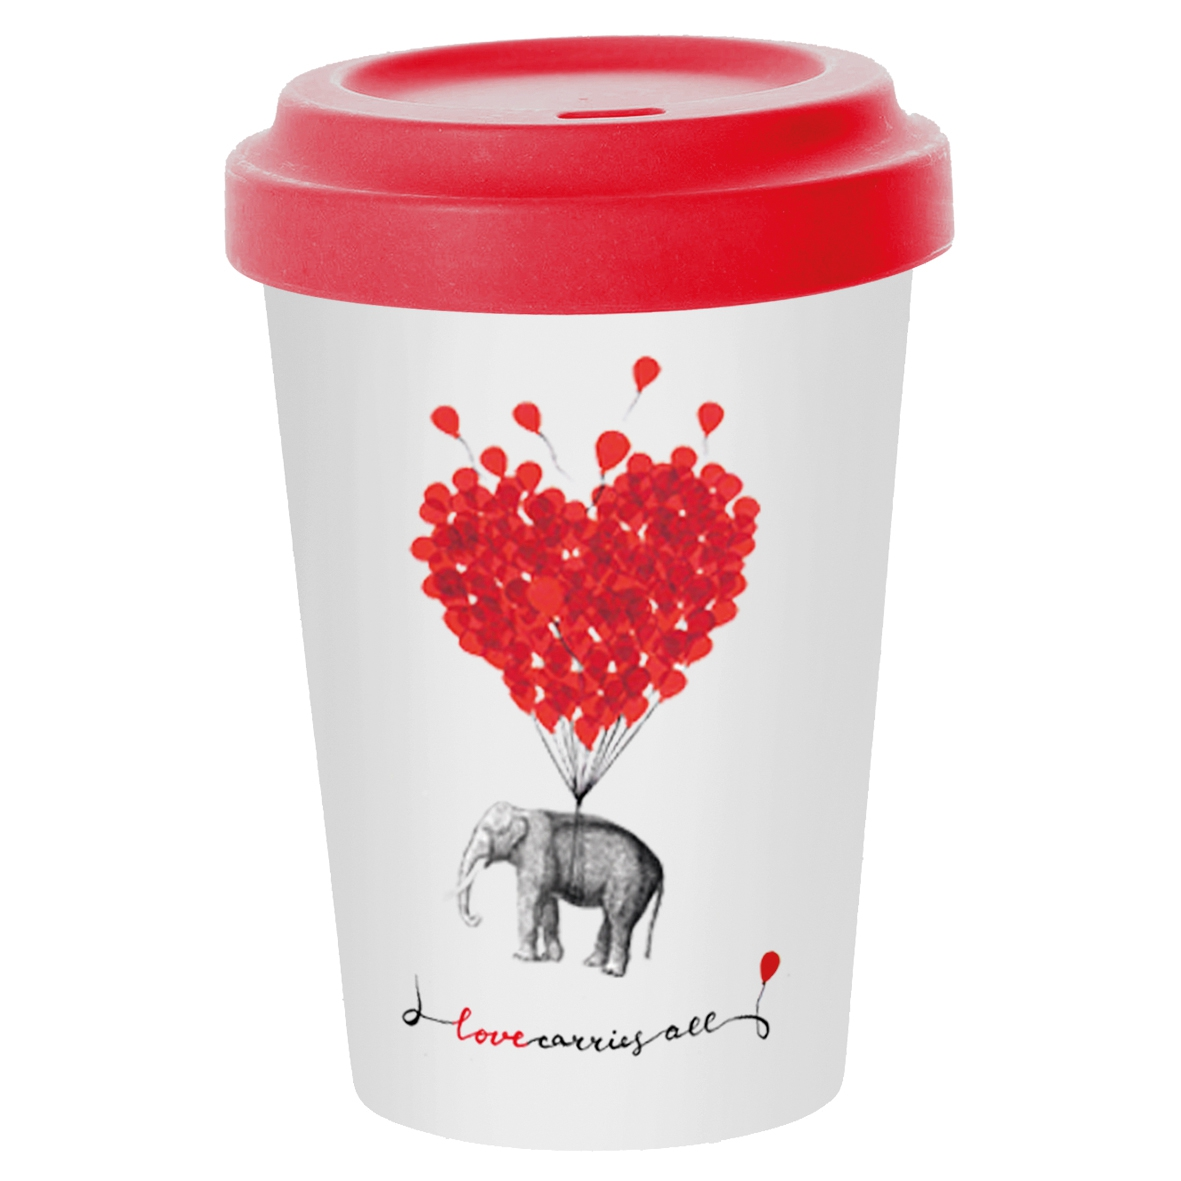 *)Becher aus Bambus Love carries all